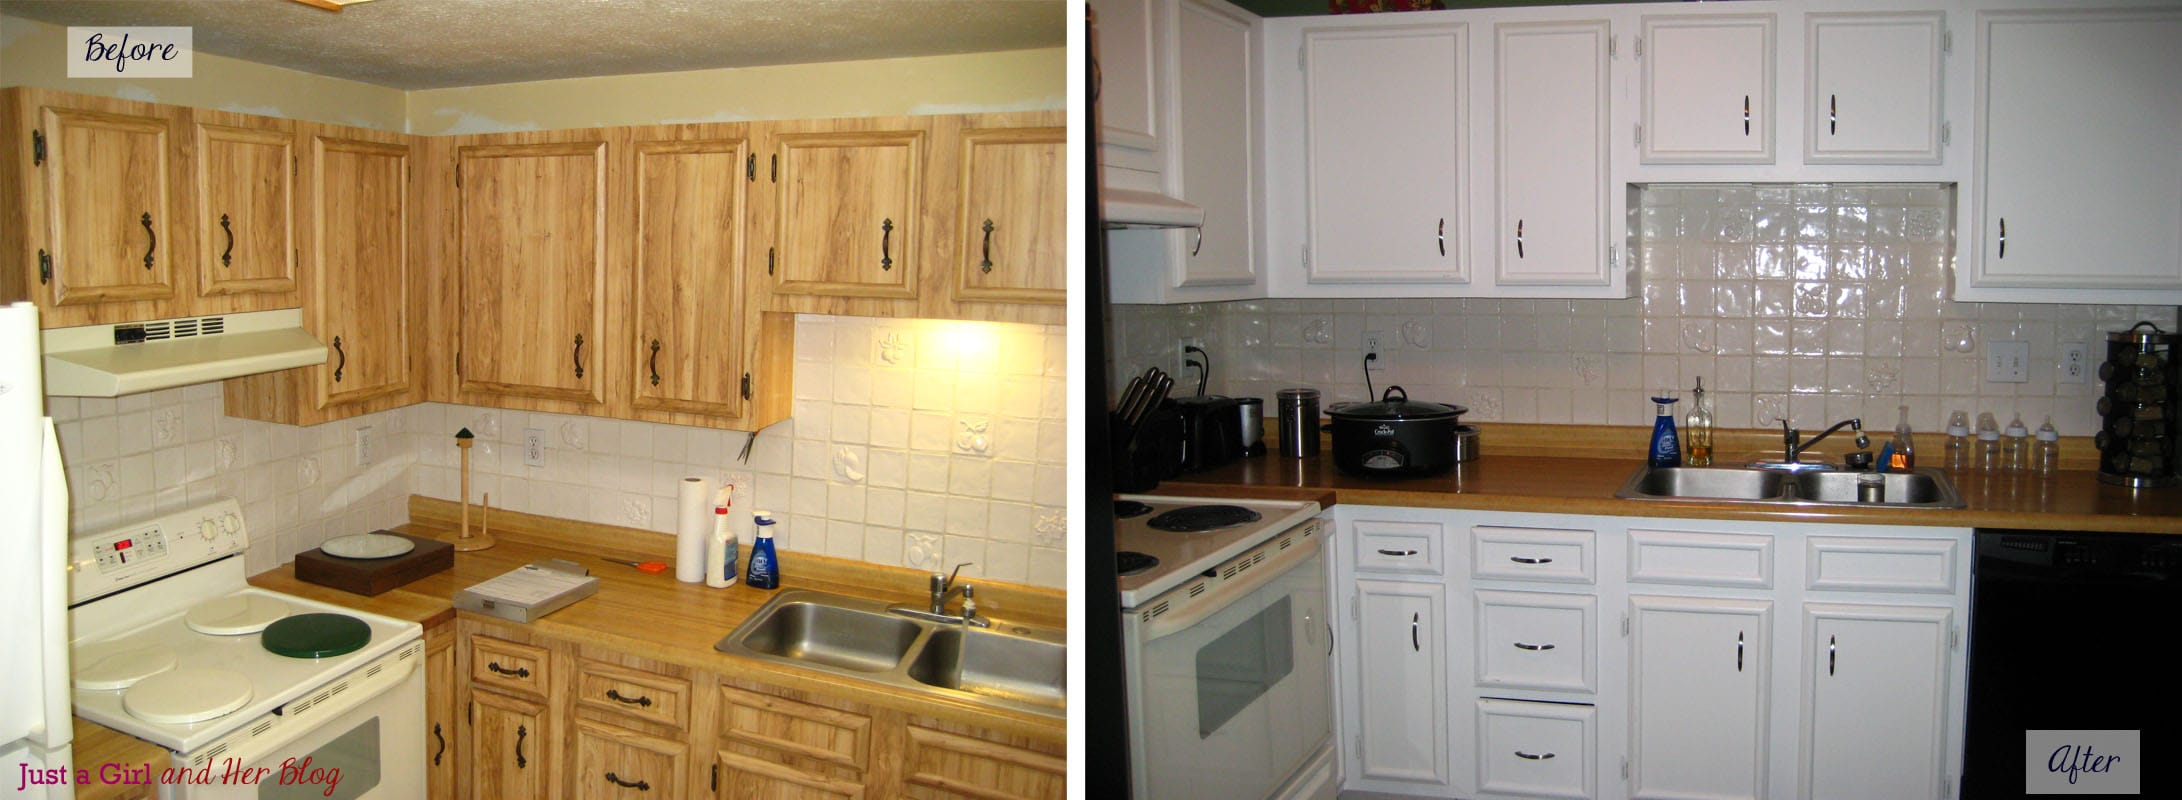 Streamlining a Small Kitchen in Three Easy Steps Painting Before and After edited 1